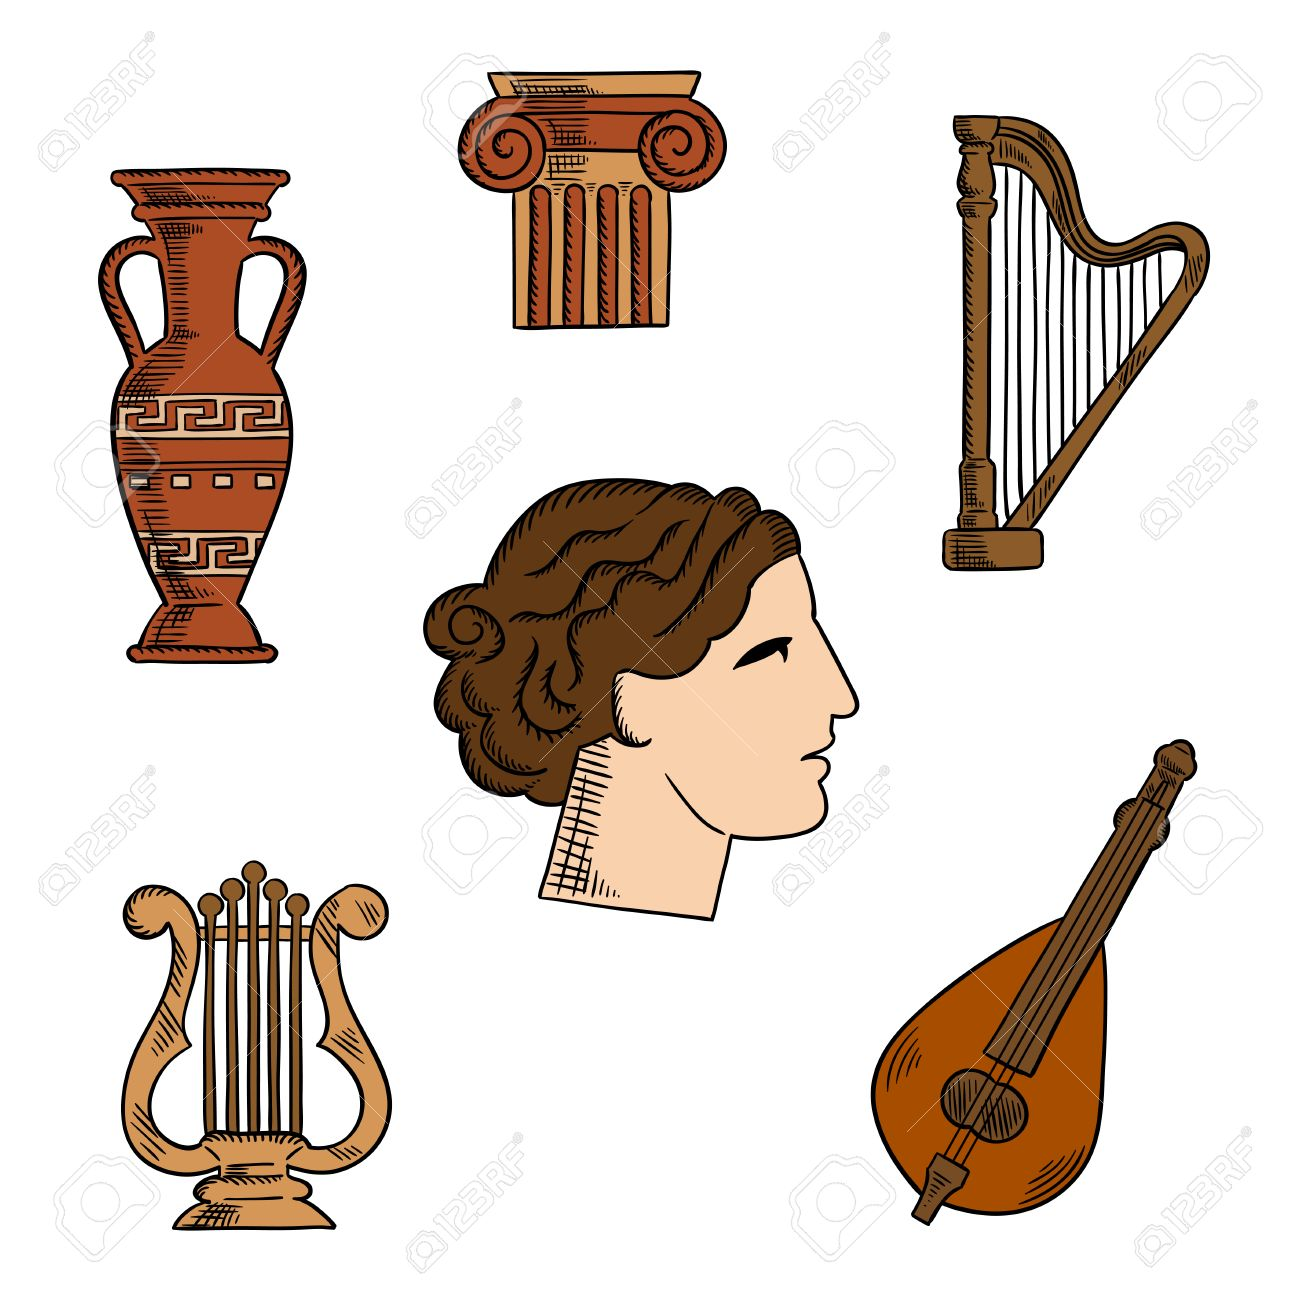 Architecture music and art symbols of ancient greece with profile architecture music and art symbols of ancient greece with profile of antique greek theater actress biocorpaavc